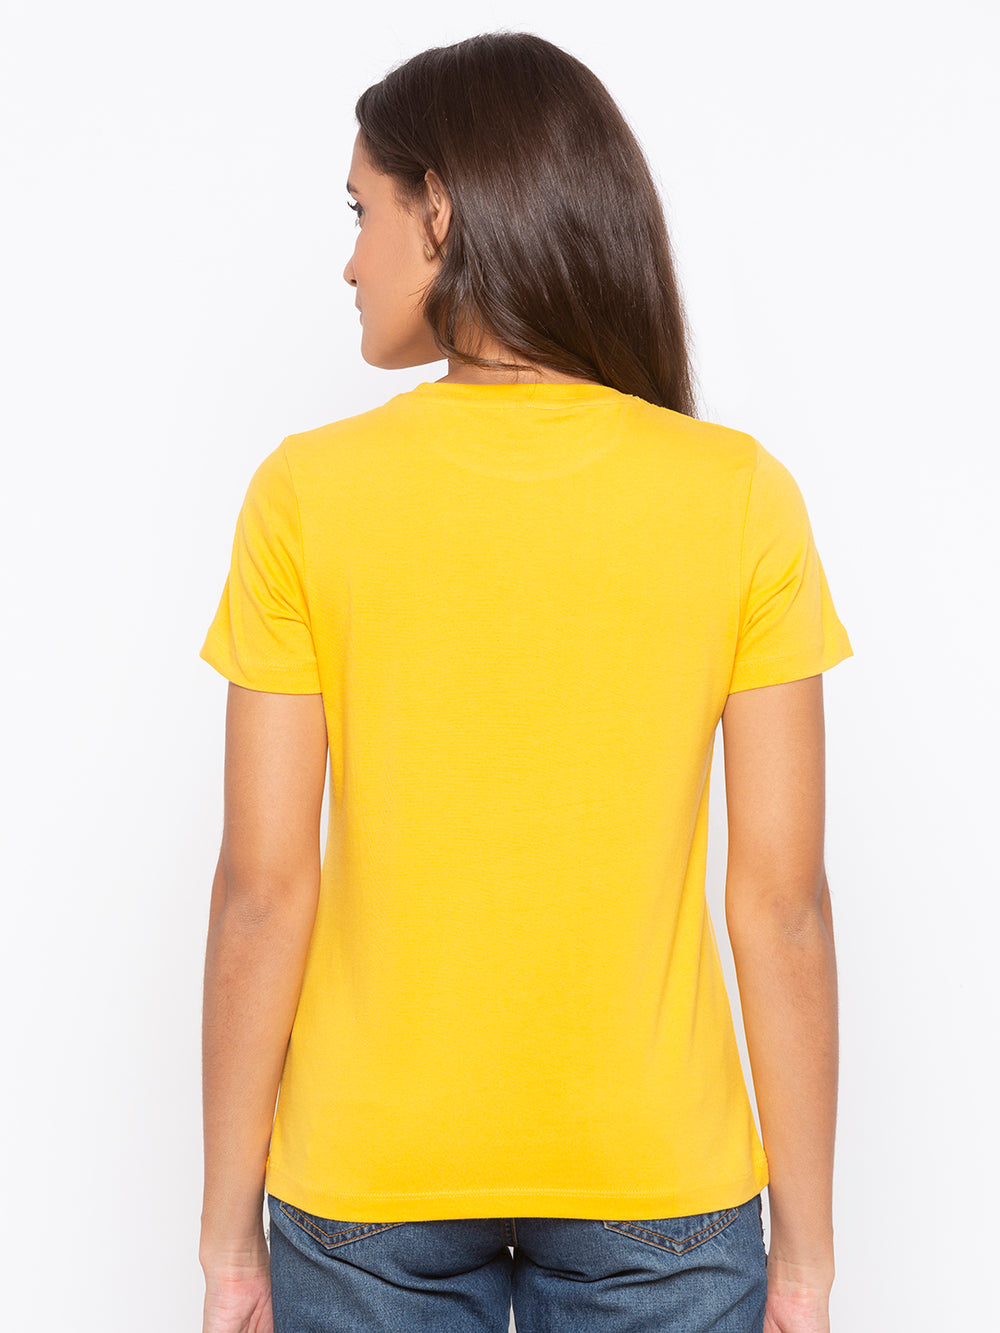 Yellow UNFOLLOW The Herd Print Cotton T-shirt For Women's